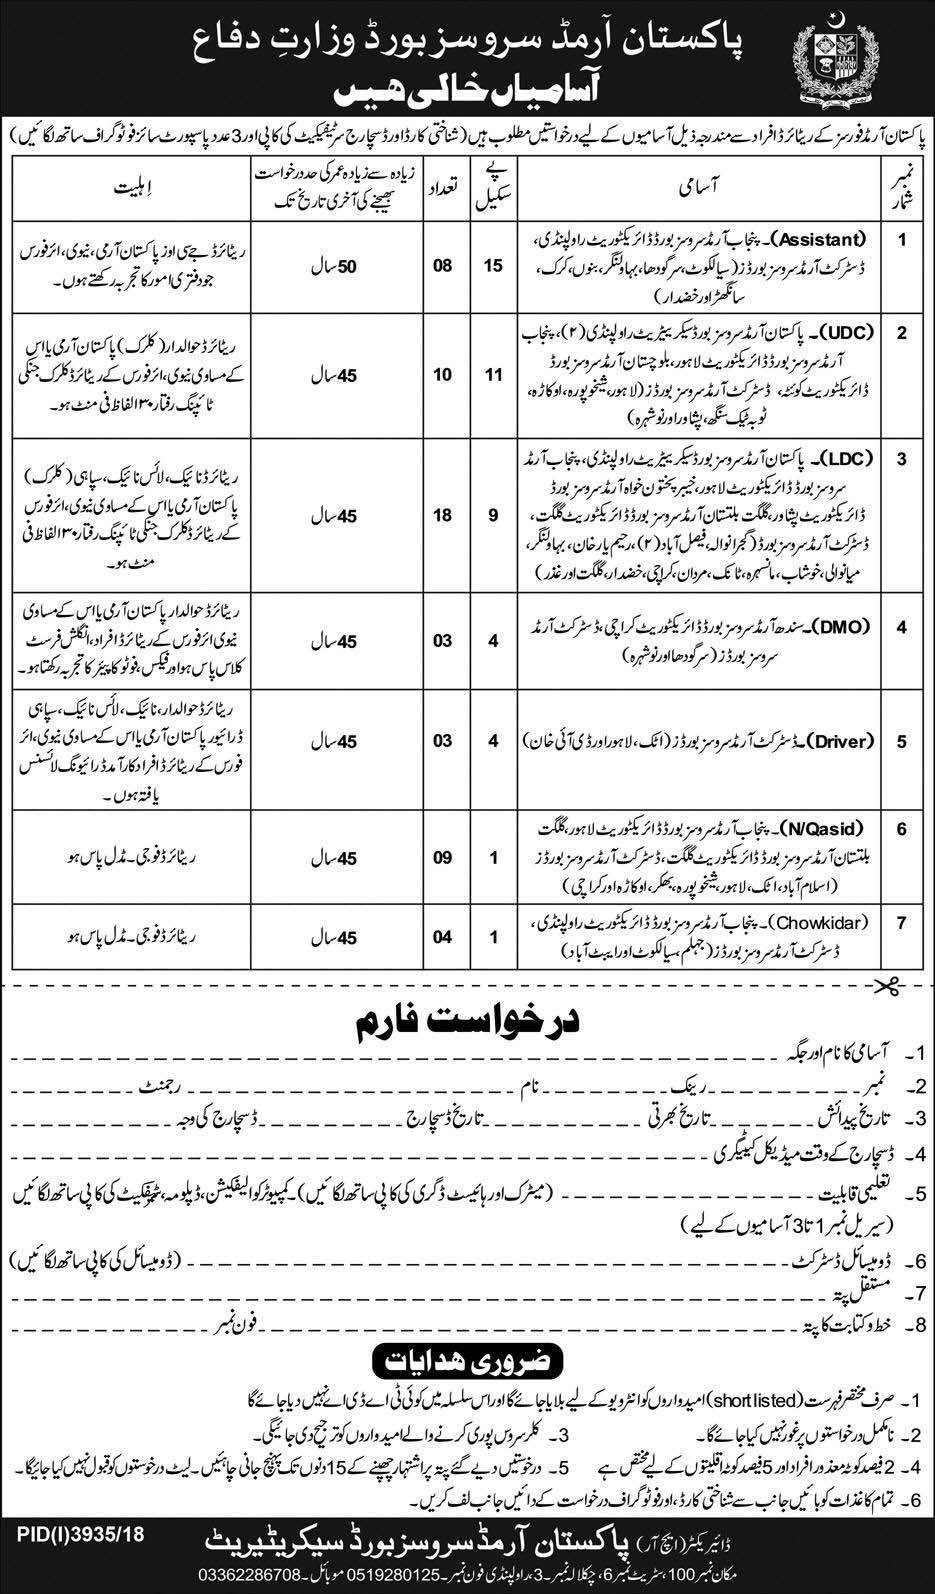 Pakistan Armed Services Board, Ministry of Defence Jobs 2019